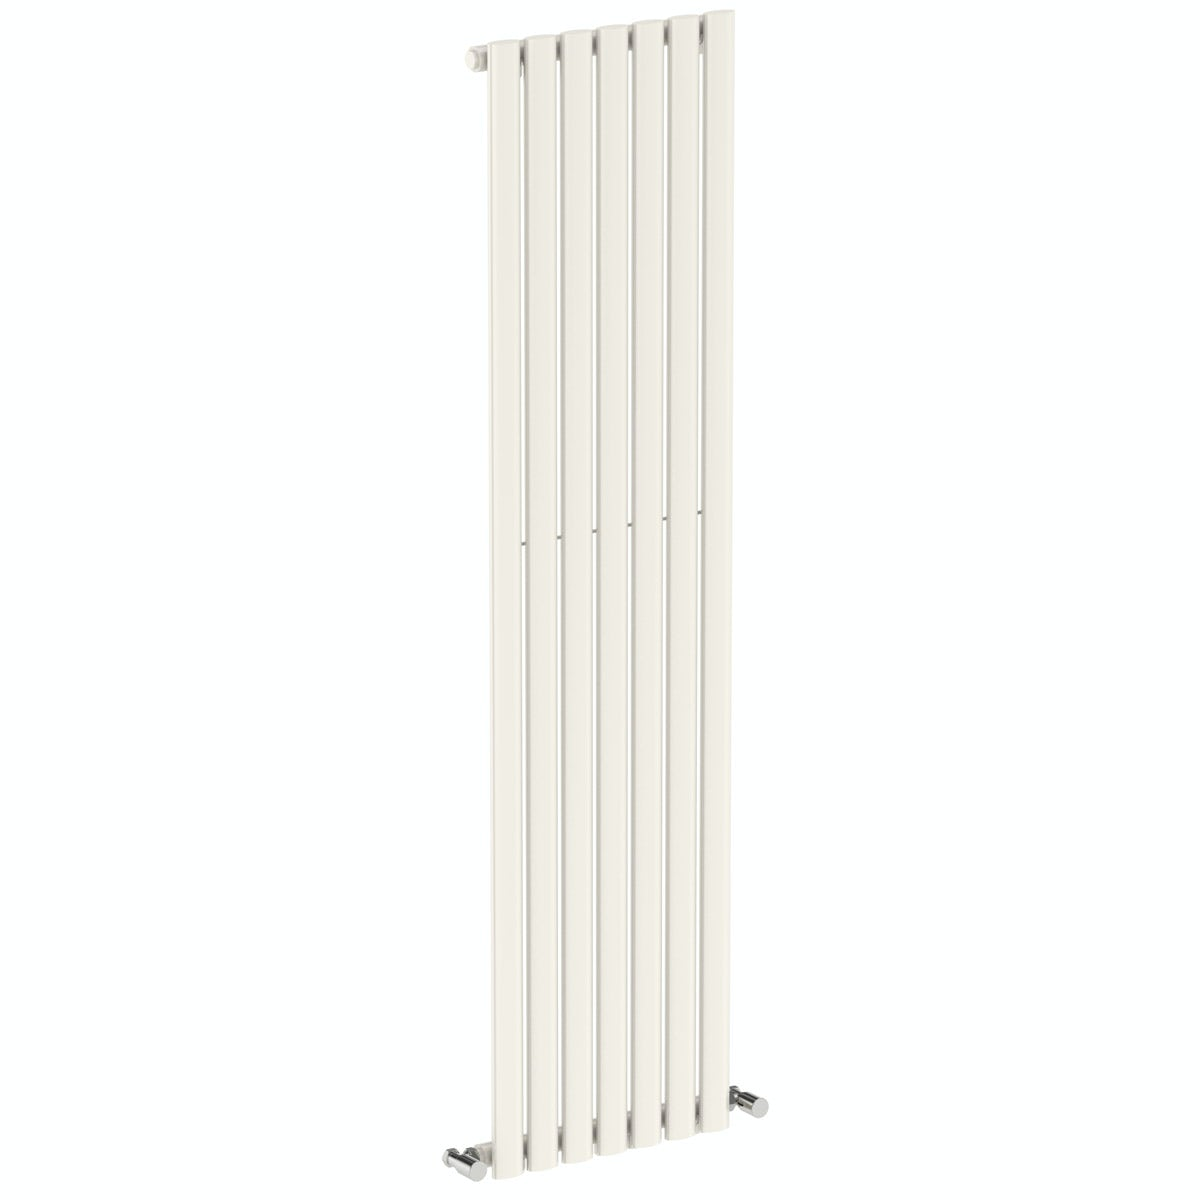 Tate white single vertical radiator 1600 x 406